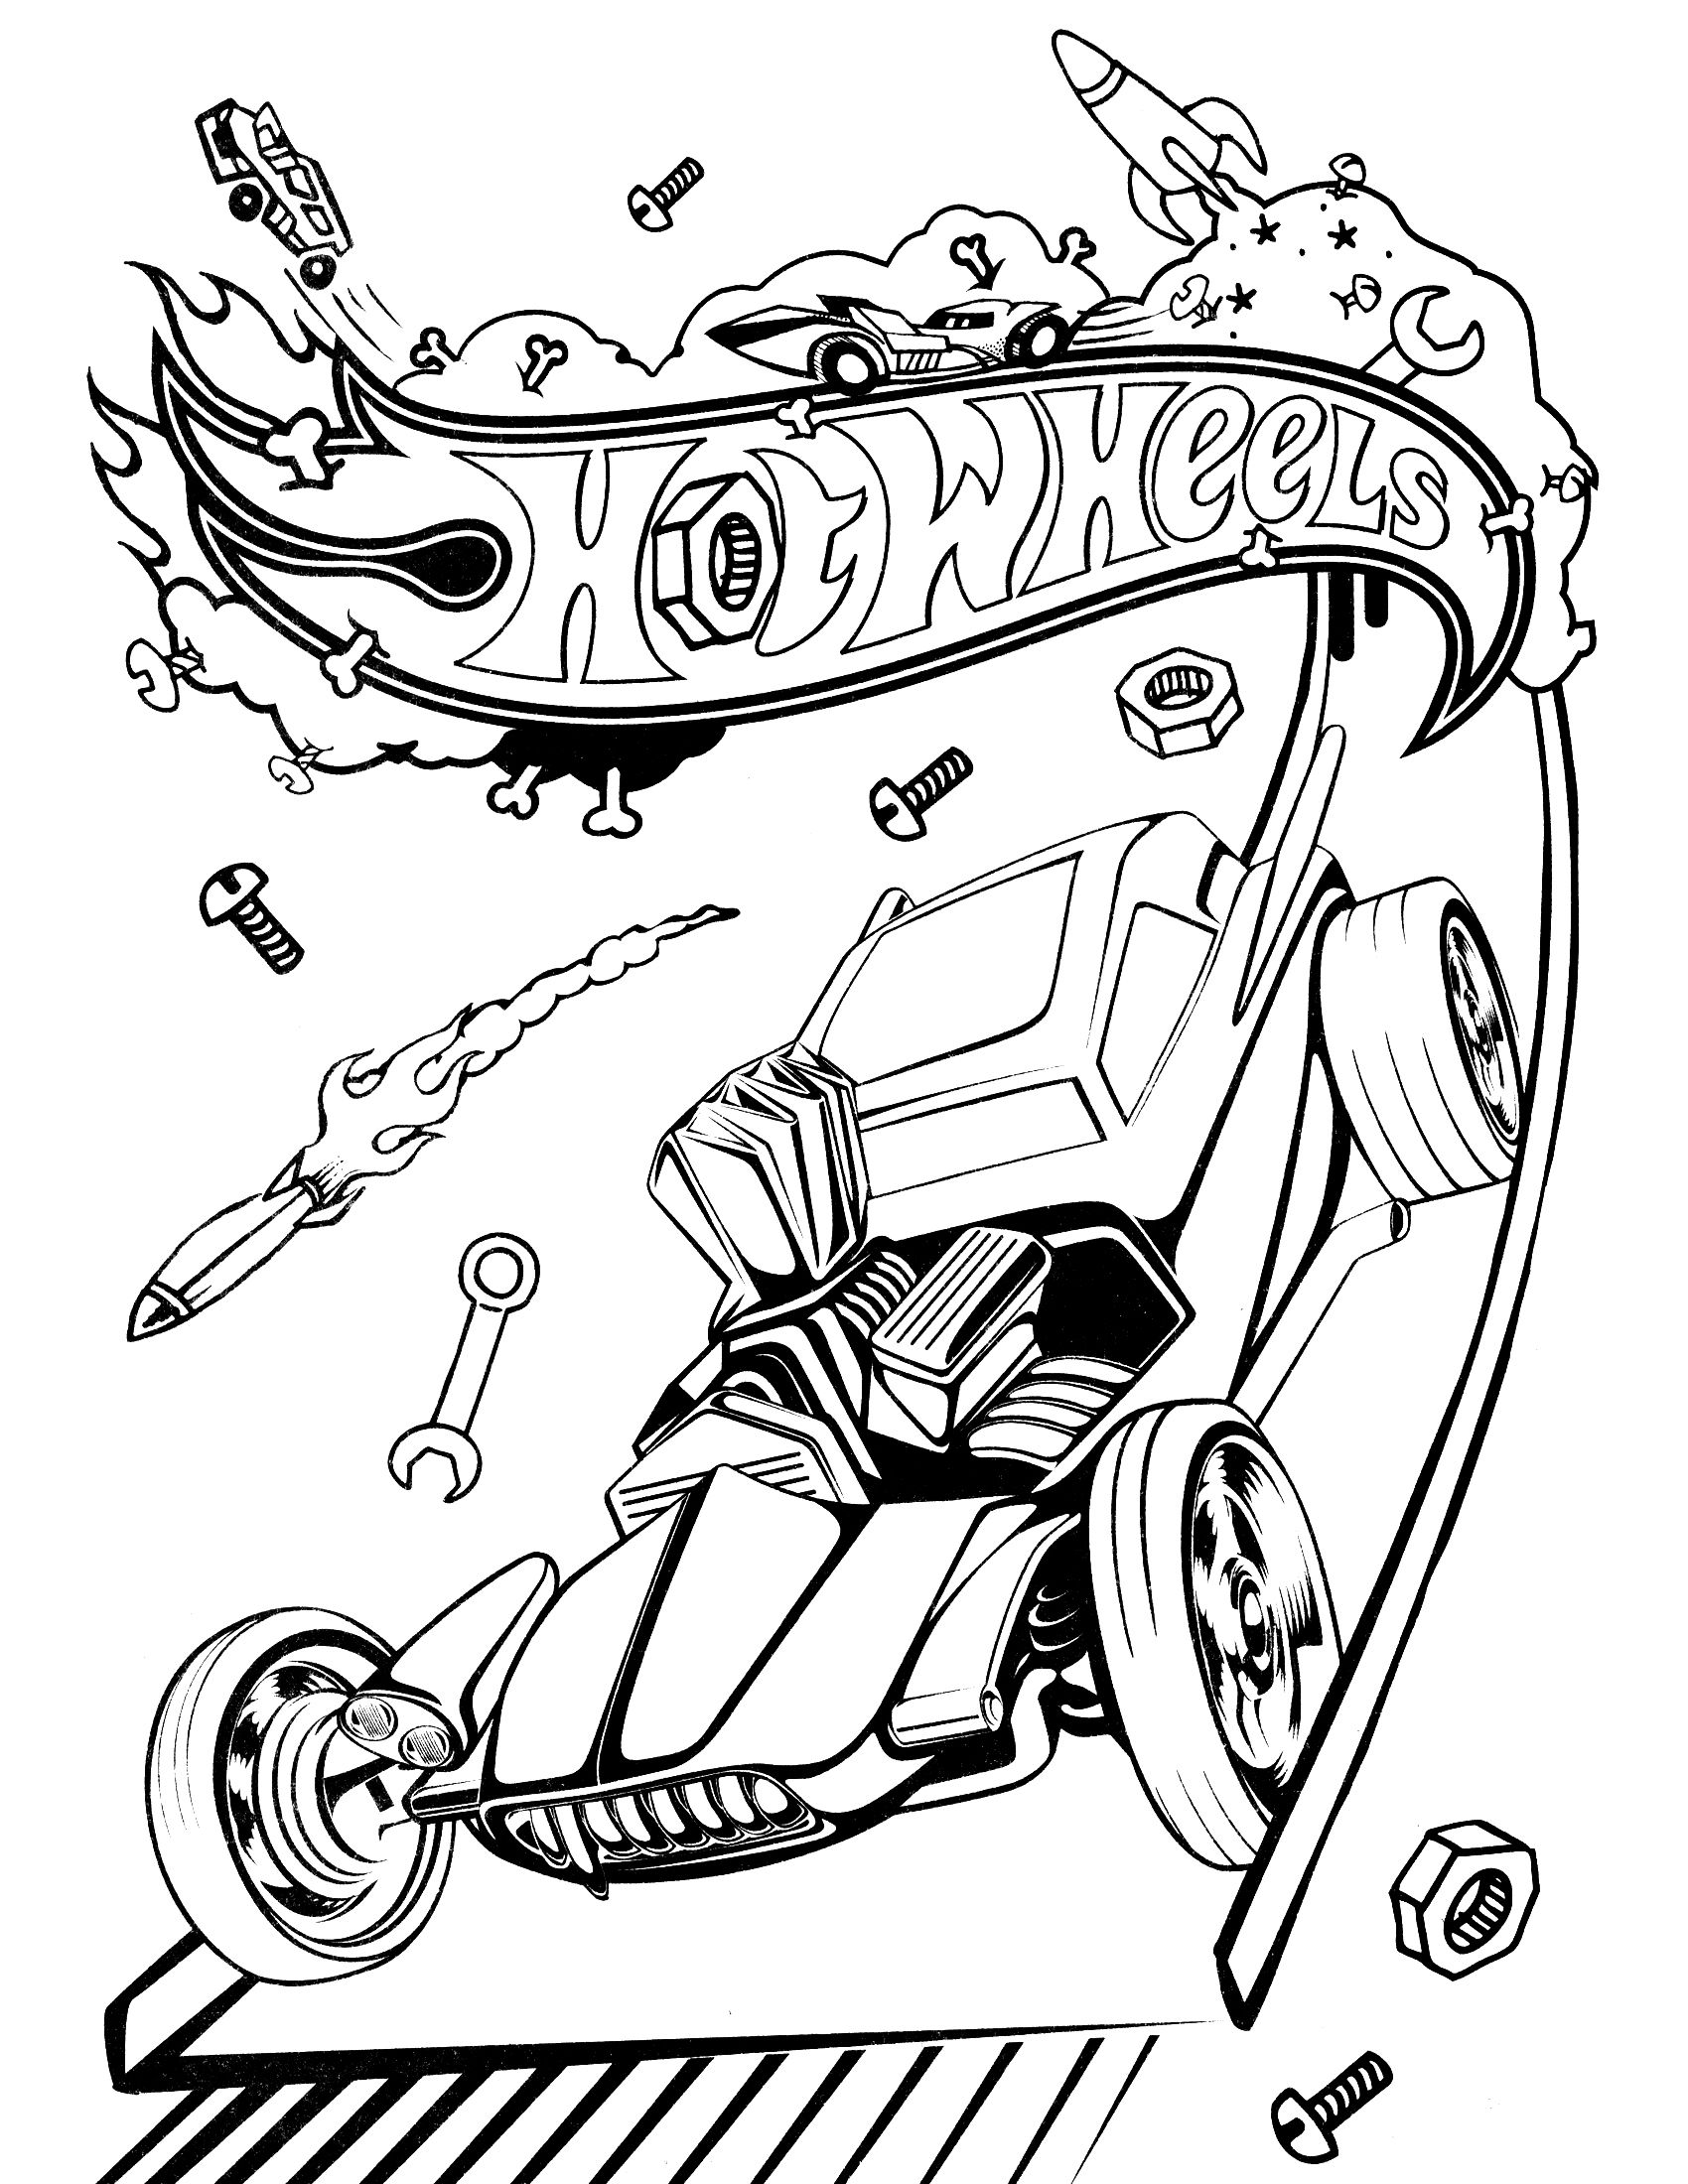 Colouring in pages games - Hot Wheels Coloring Pages Games 4